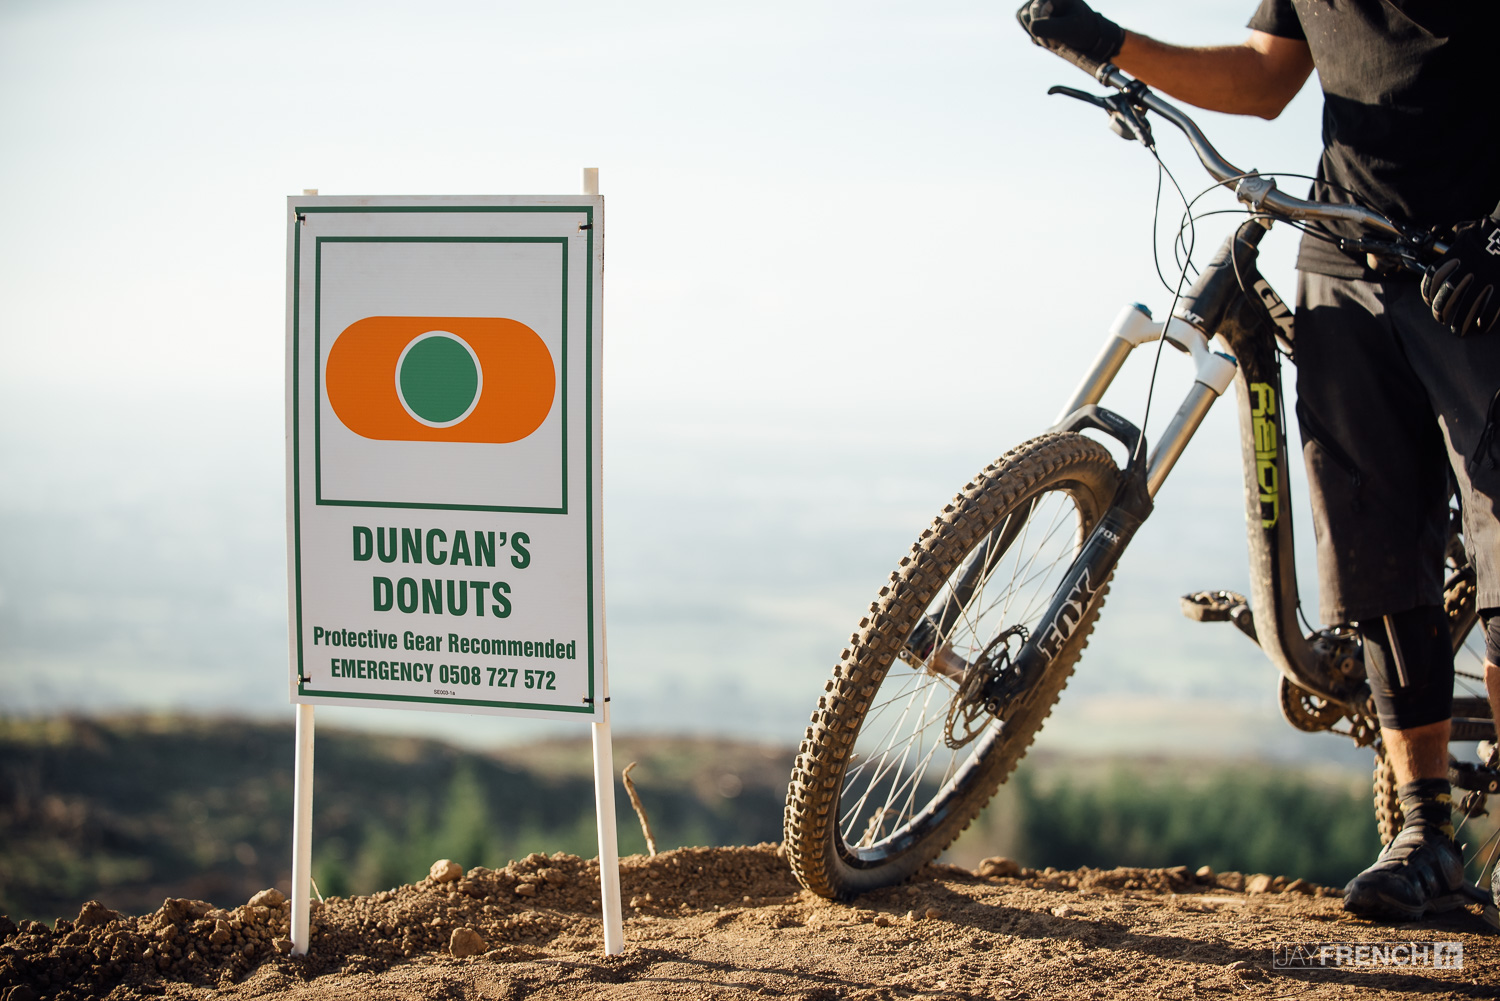 Dropping in to 'Duncan's Donuts'.